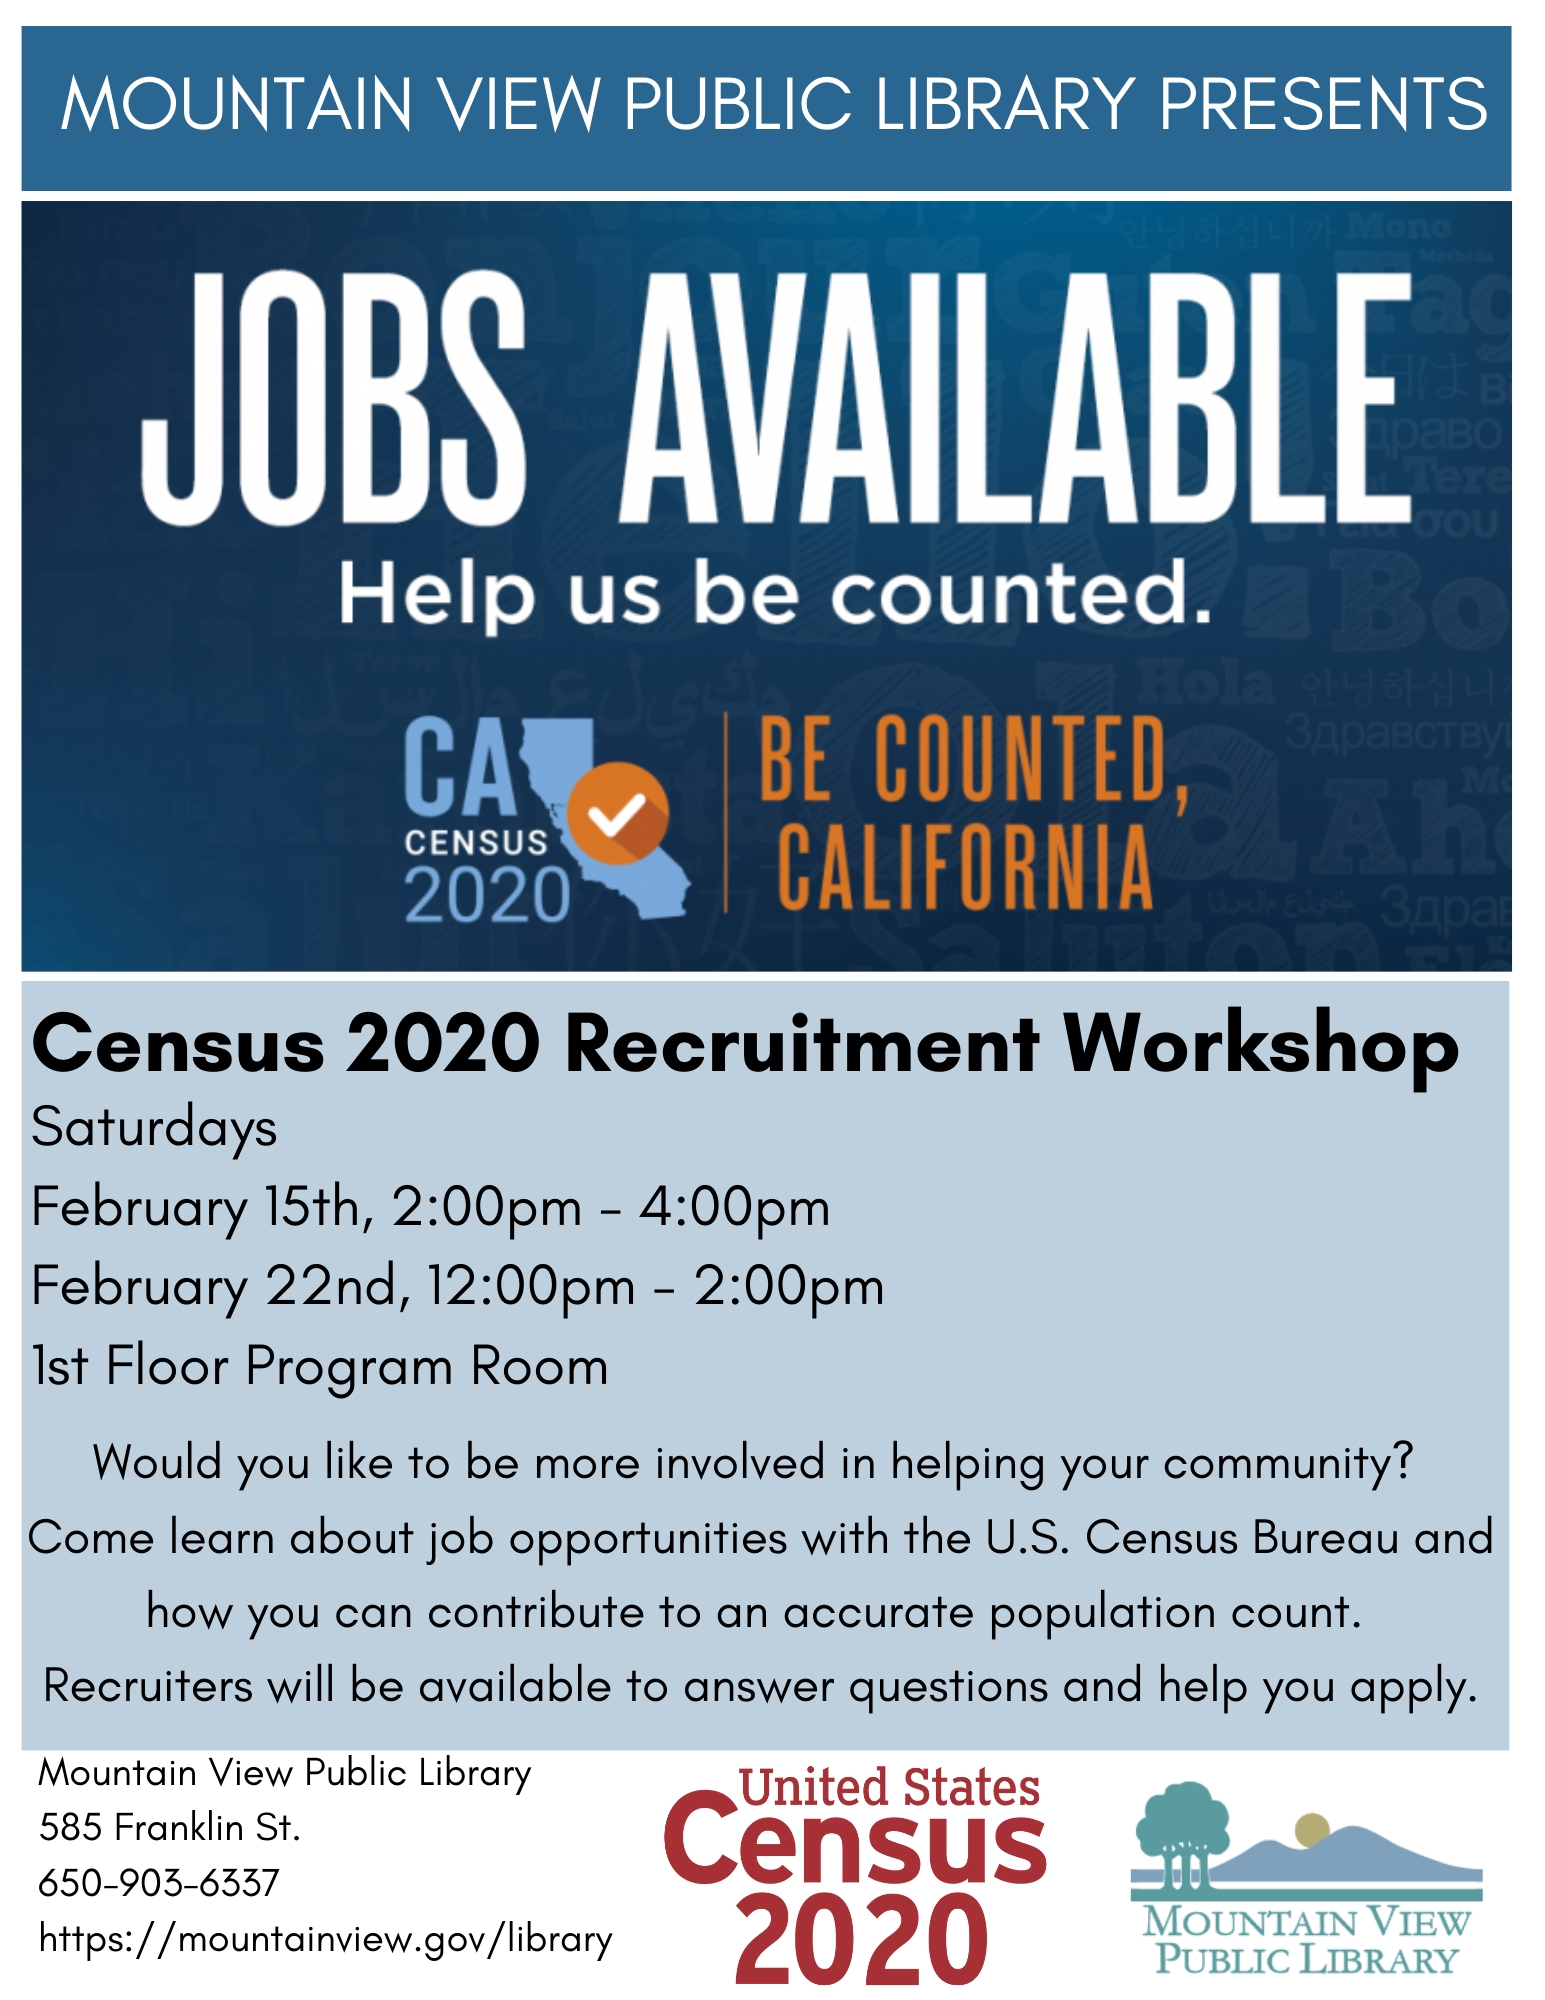 Census 2020 Recruitment Workshop